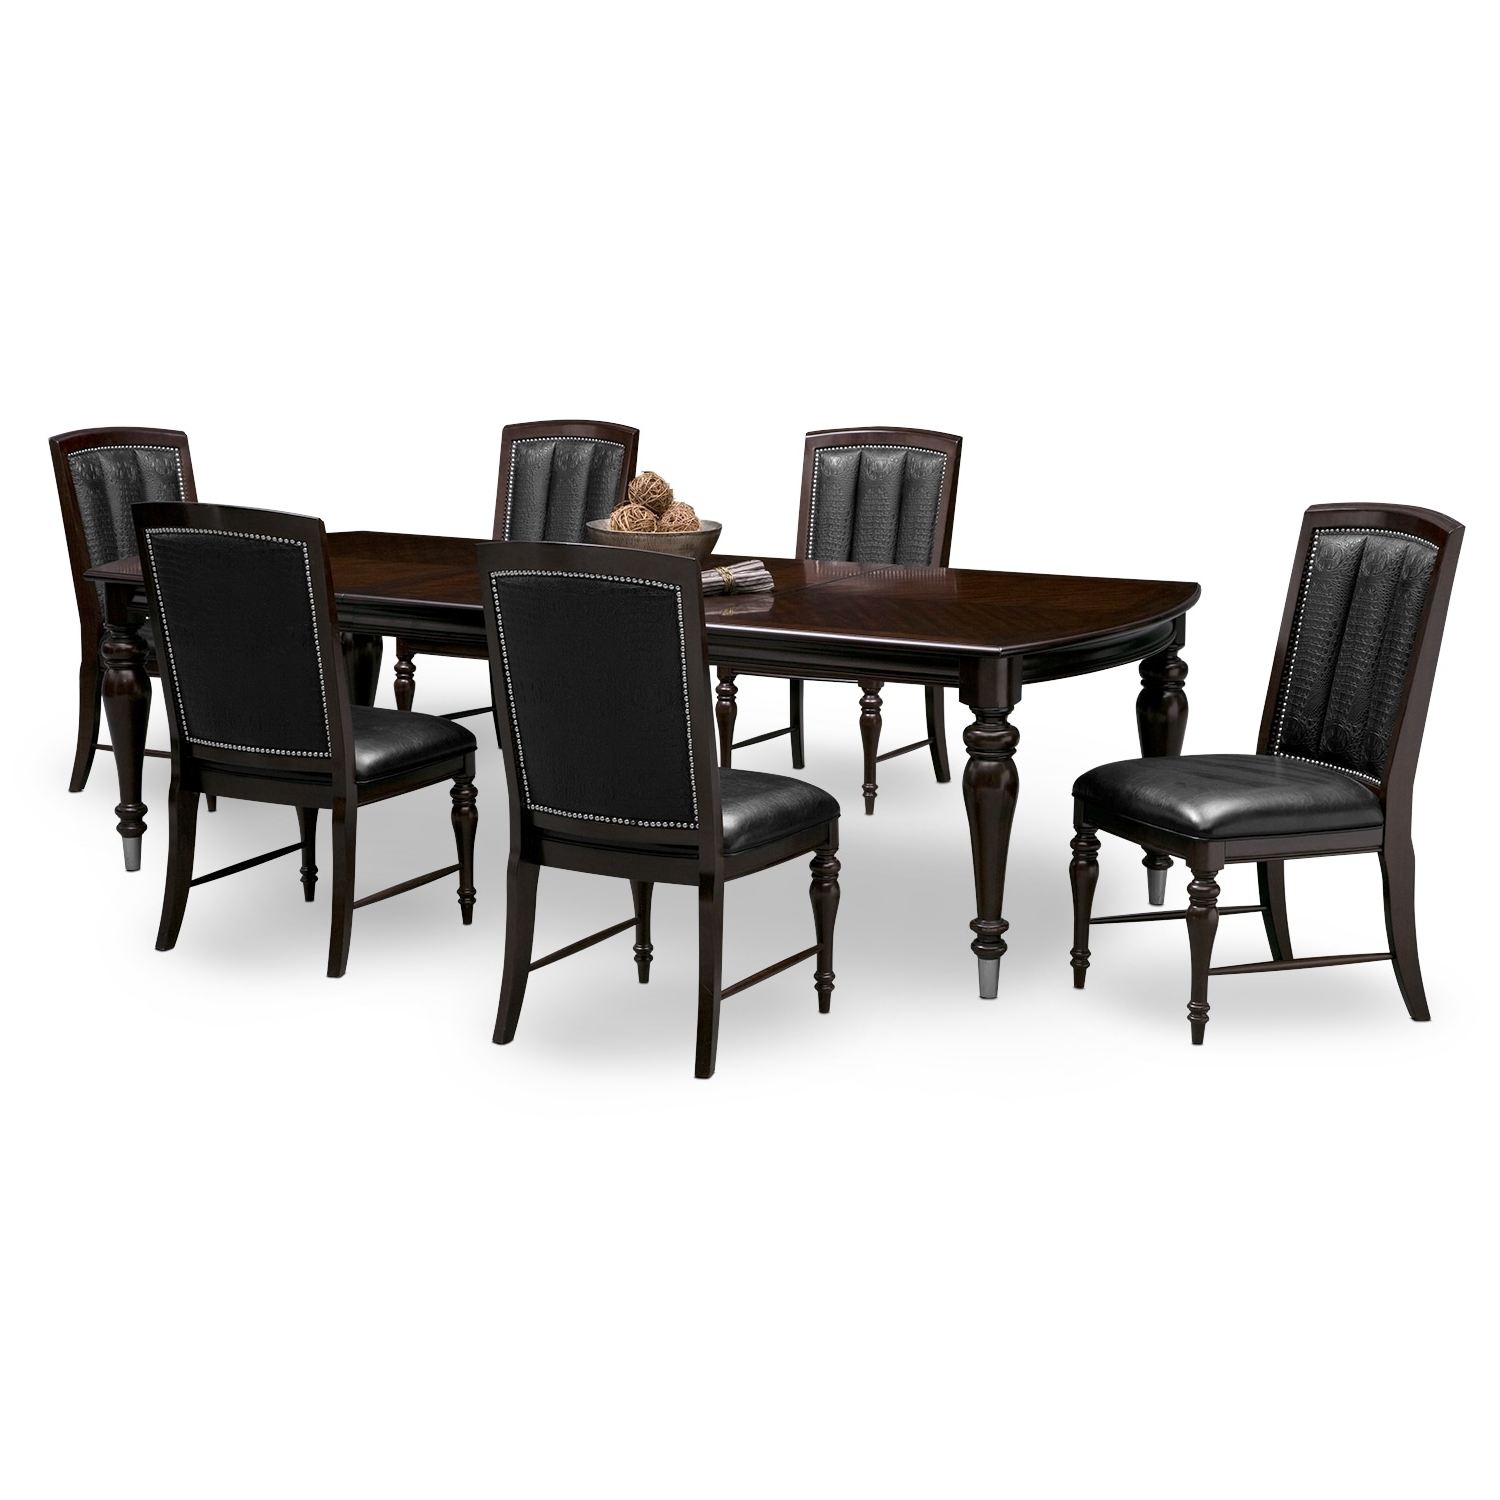 American Signature Throughout Recent Craftsman 9 Piece Extension Dining Sets With Uph Side Chairs (Gallery 21 of 25)